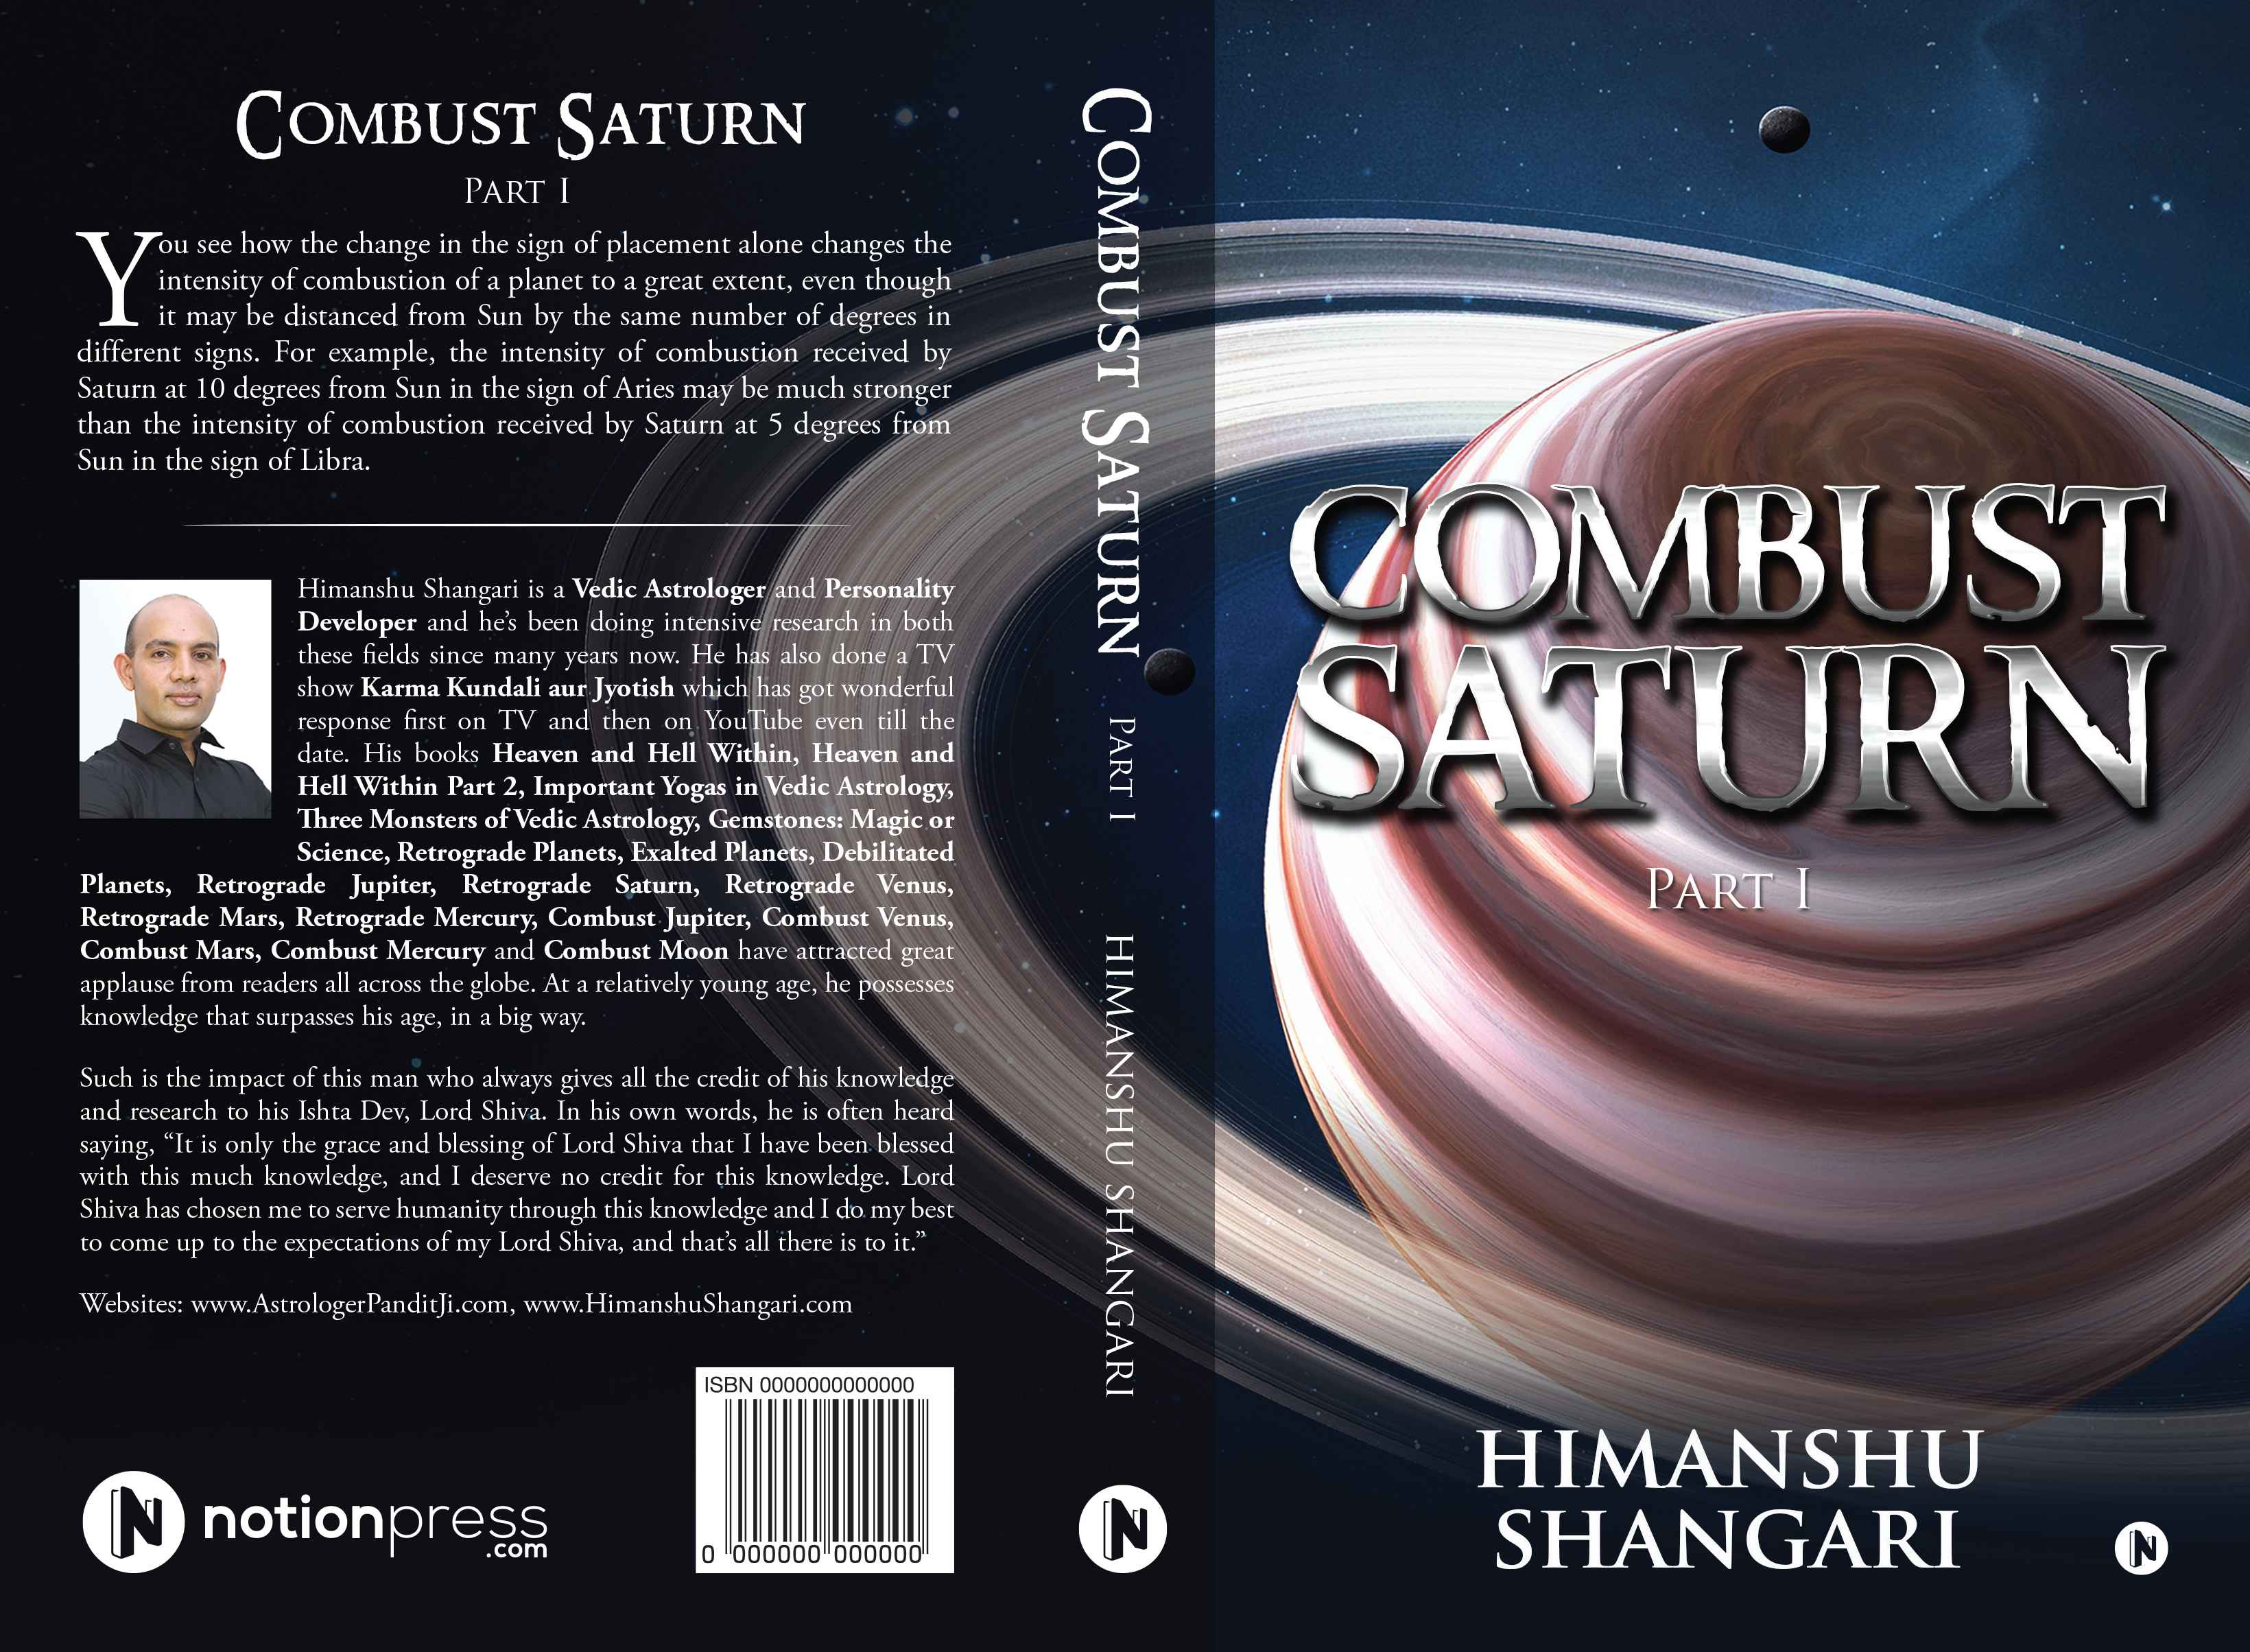 Combust Saturn Part 1